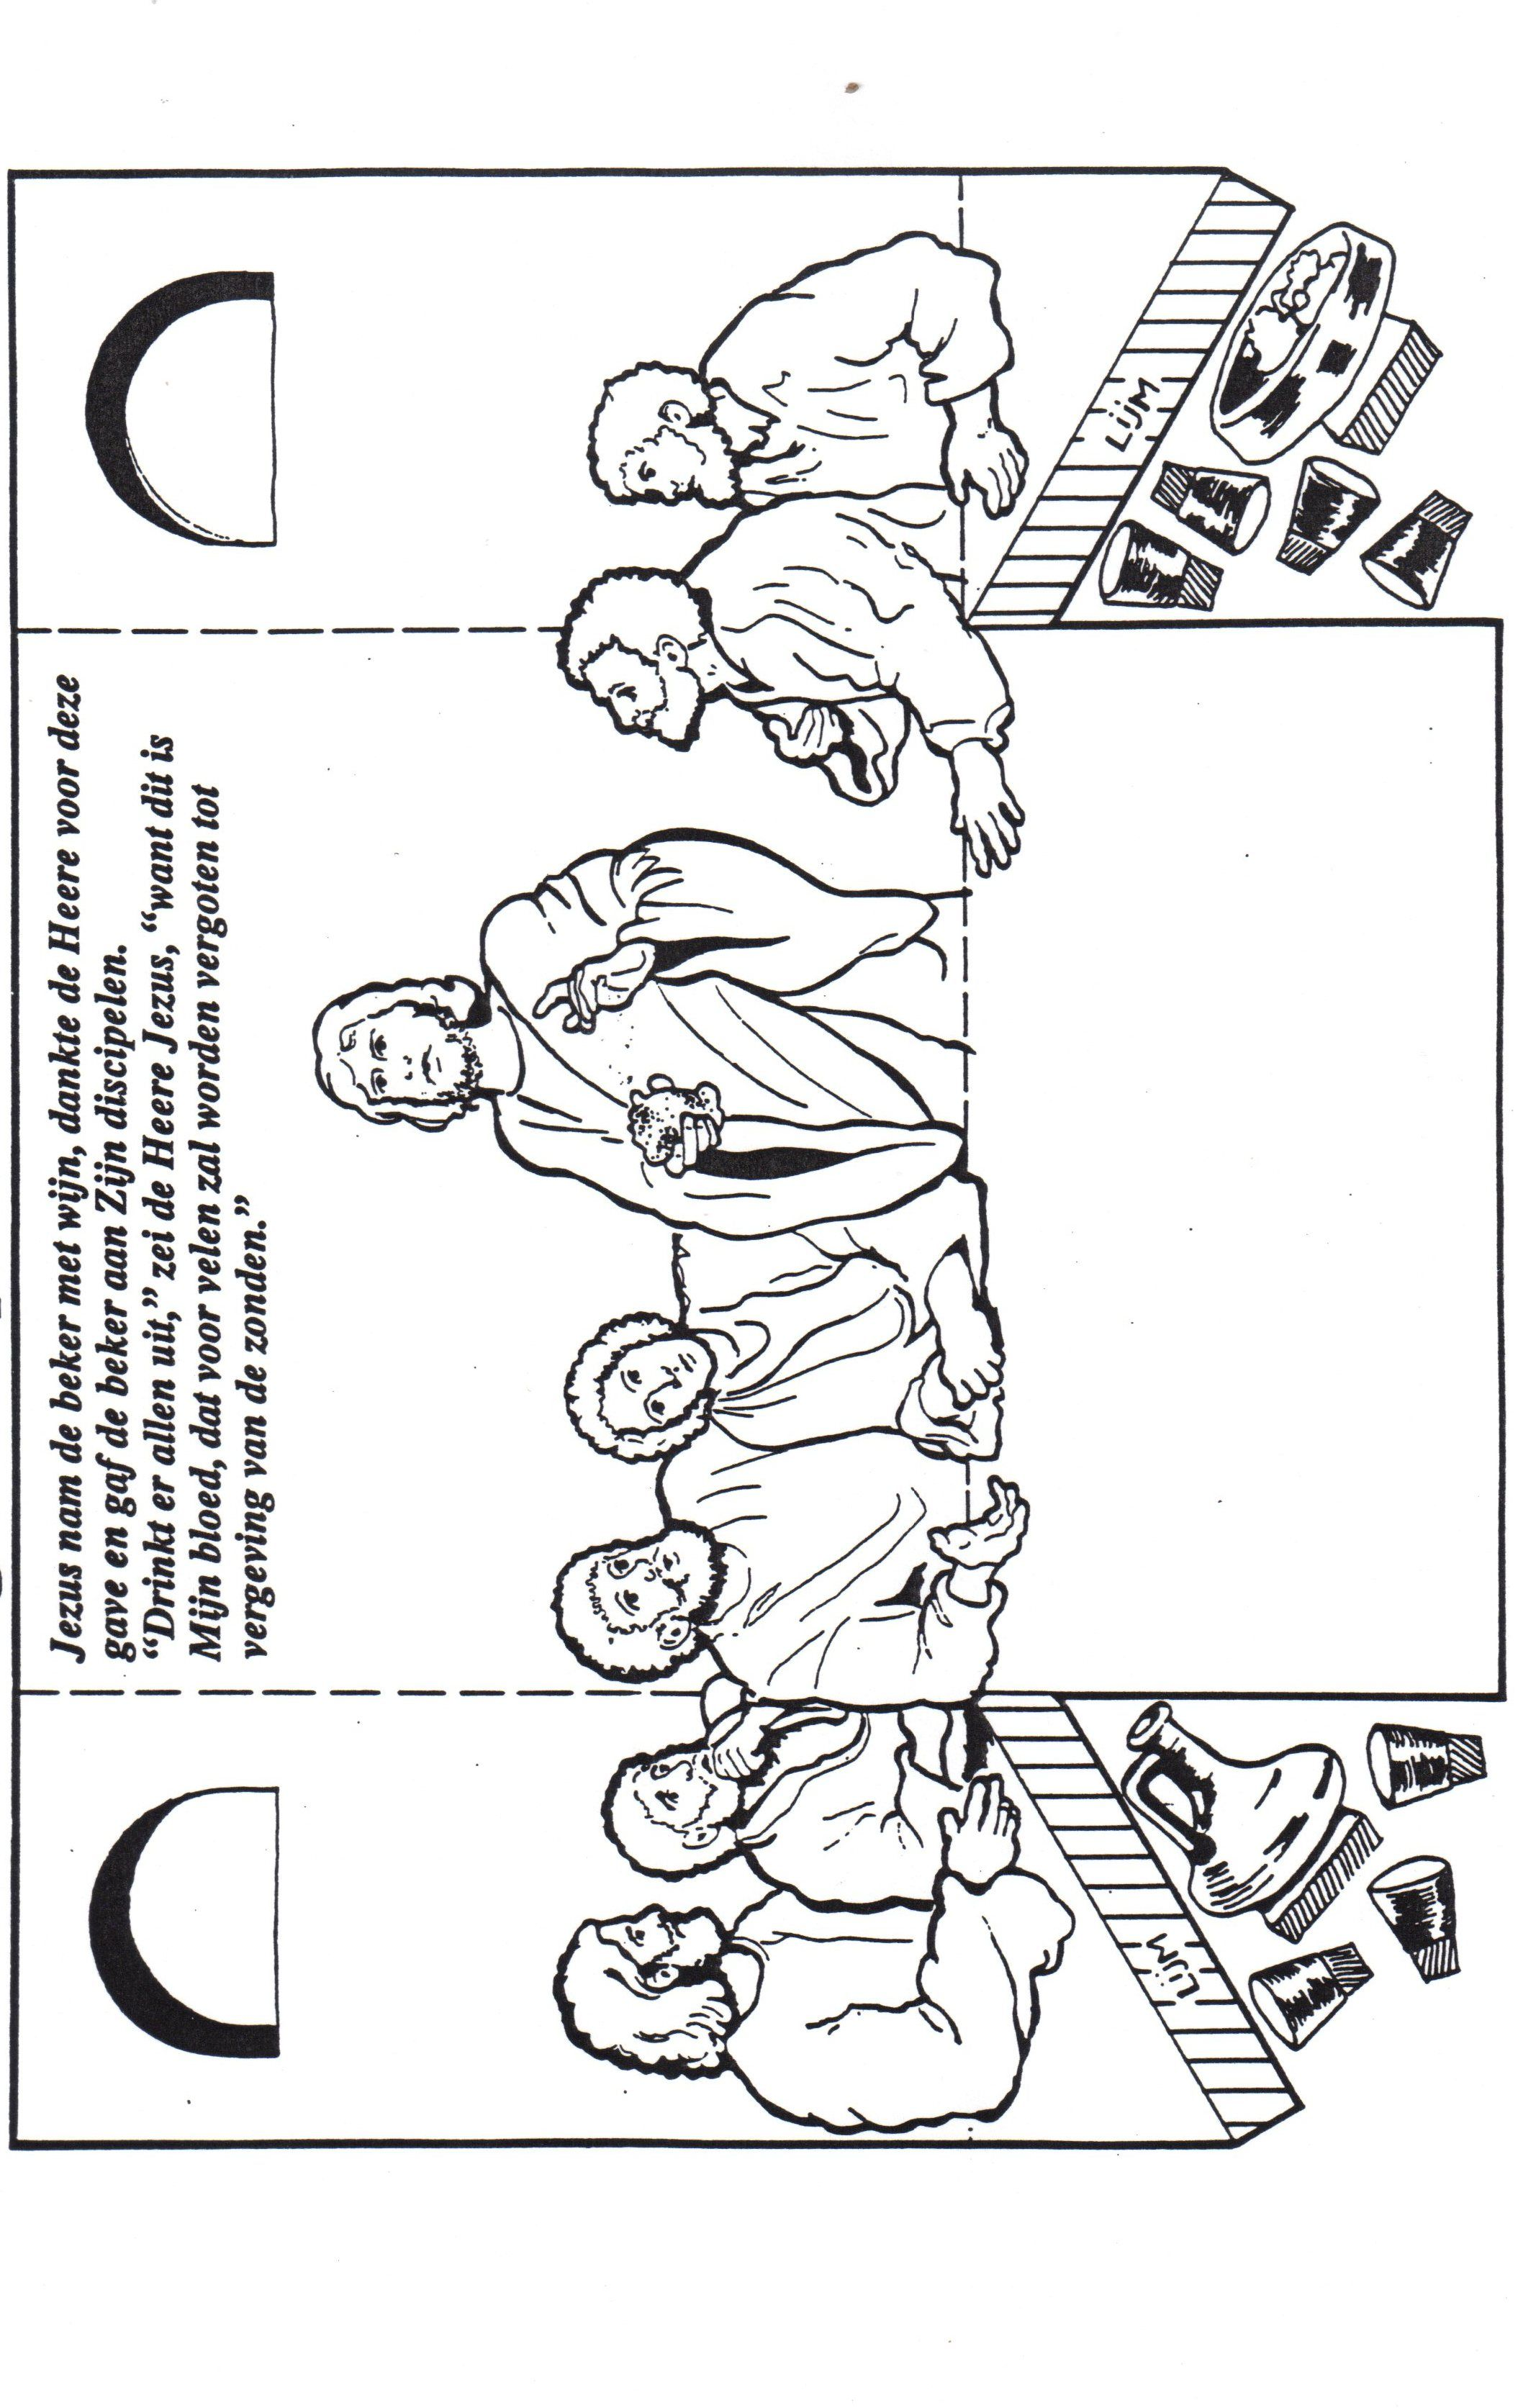 Printable coloring pages last supper - Find This Pin And More On Manualidad Catequesis The Last Supper